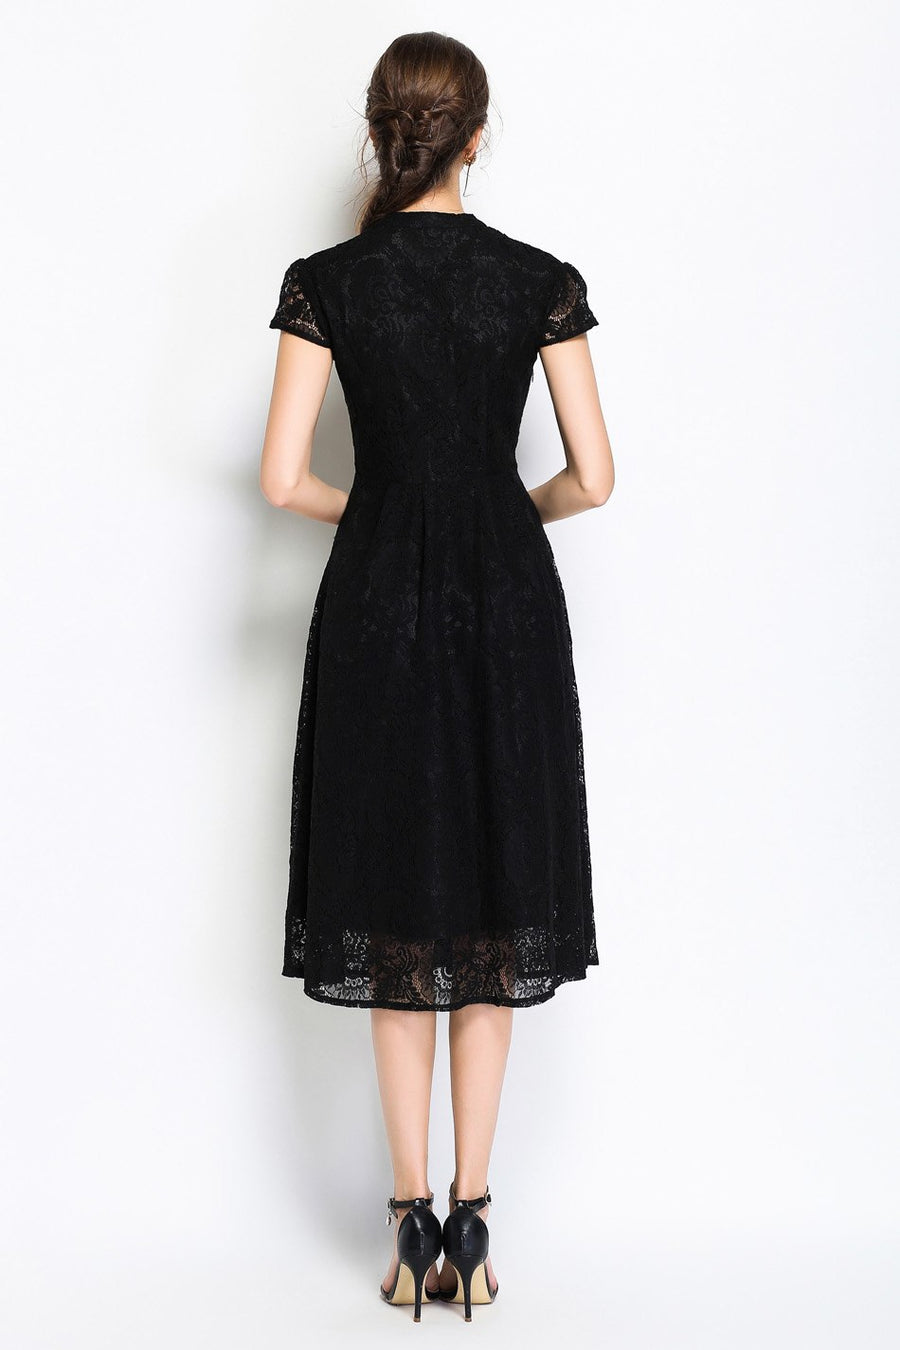 Black V-neck Lace Hollow Out Slim A-line Midi Dress with Buttons Front